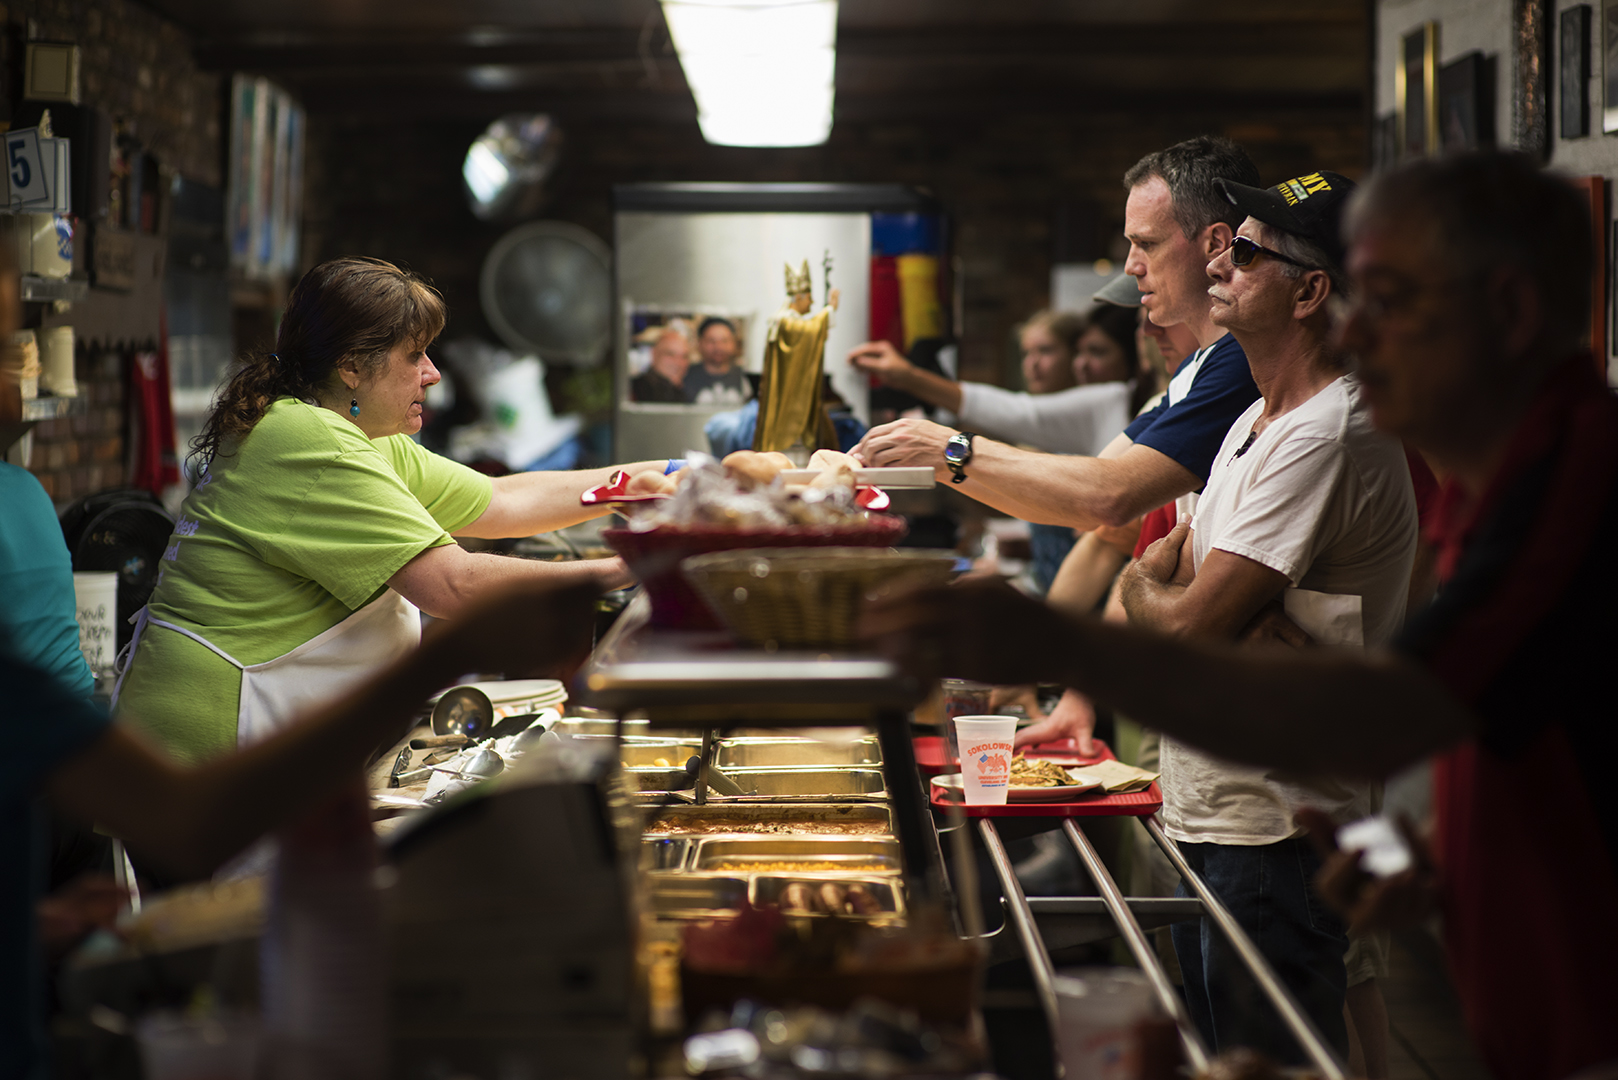 Patrons go through the cafeteria syle line during the lunch rush at Sokolowski's University Inn on July 1 in Cleveland's Tremont neighborhood. (Dustin Franz/The Washington Post)